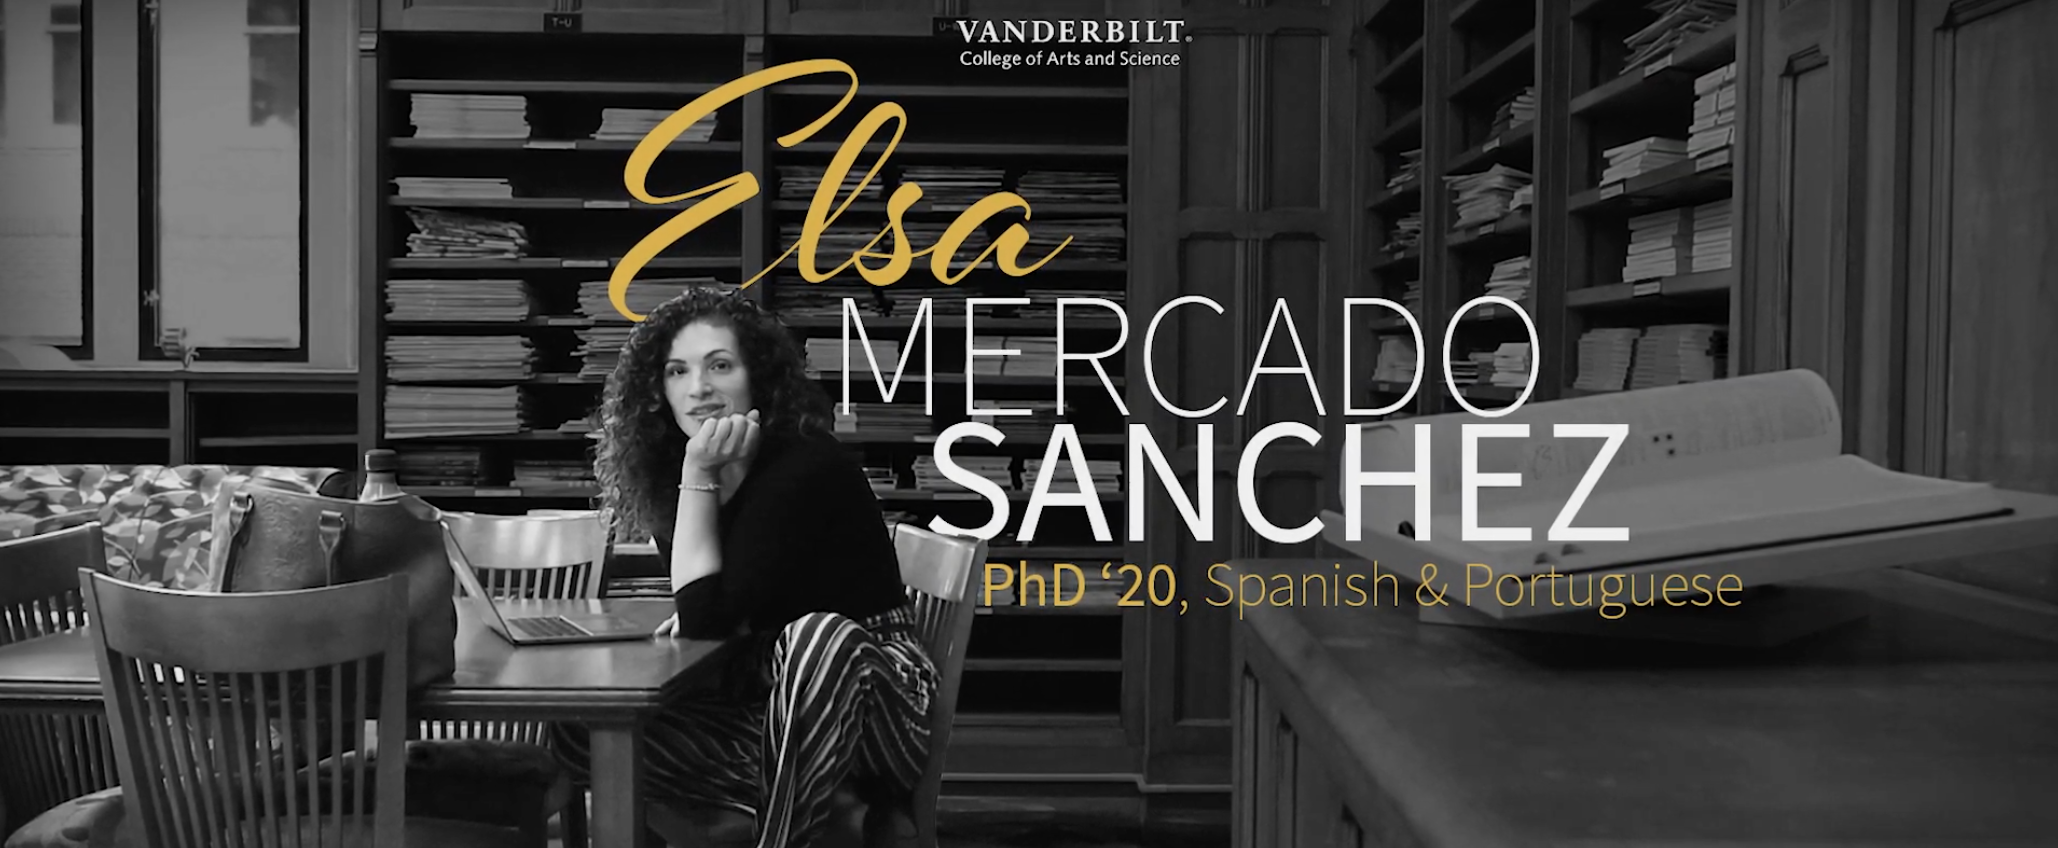 Elsa Mercado Sanchez, Ph.D.'20 | Stronger together: the future of VU's Latinx community